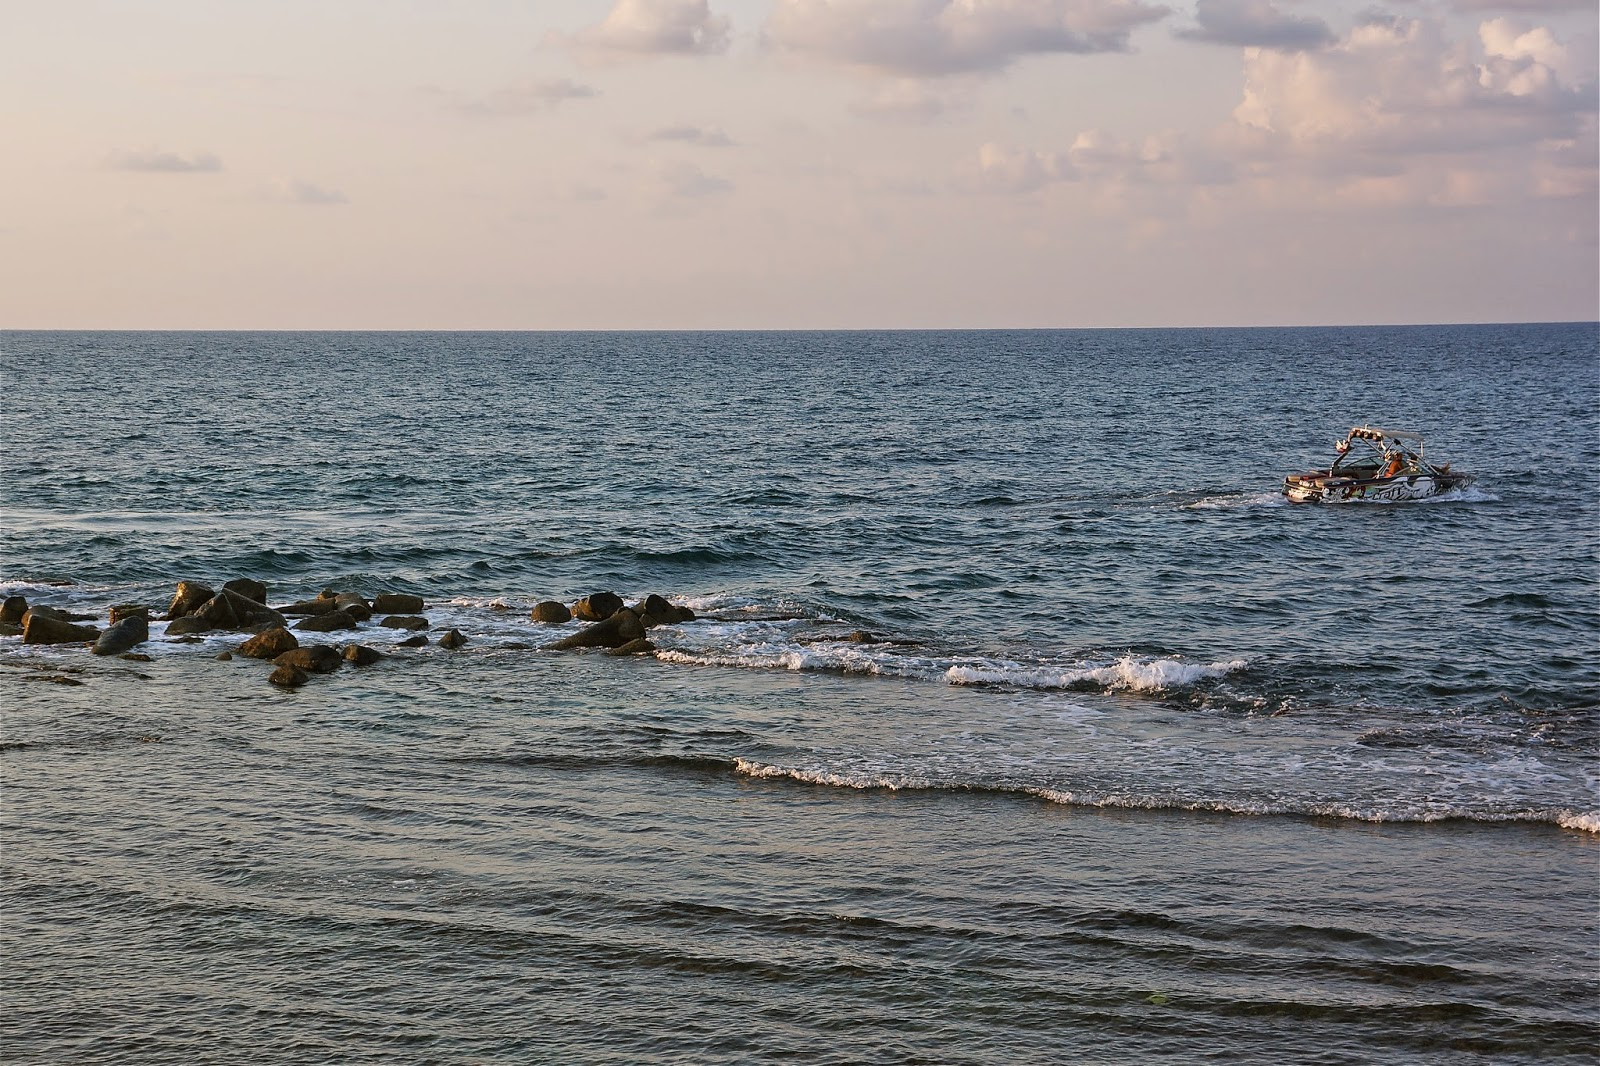 Picture of the Mediterranean sea in Tyre, Lebanon.